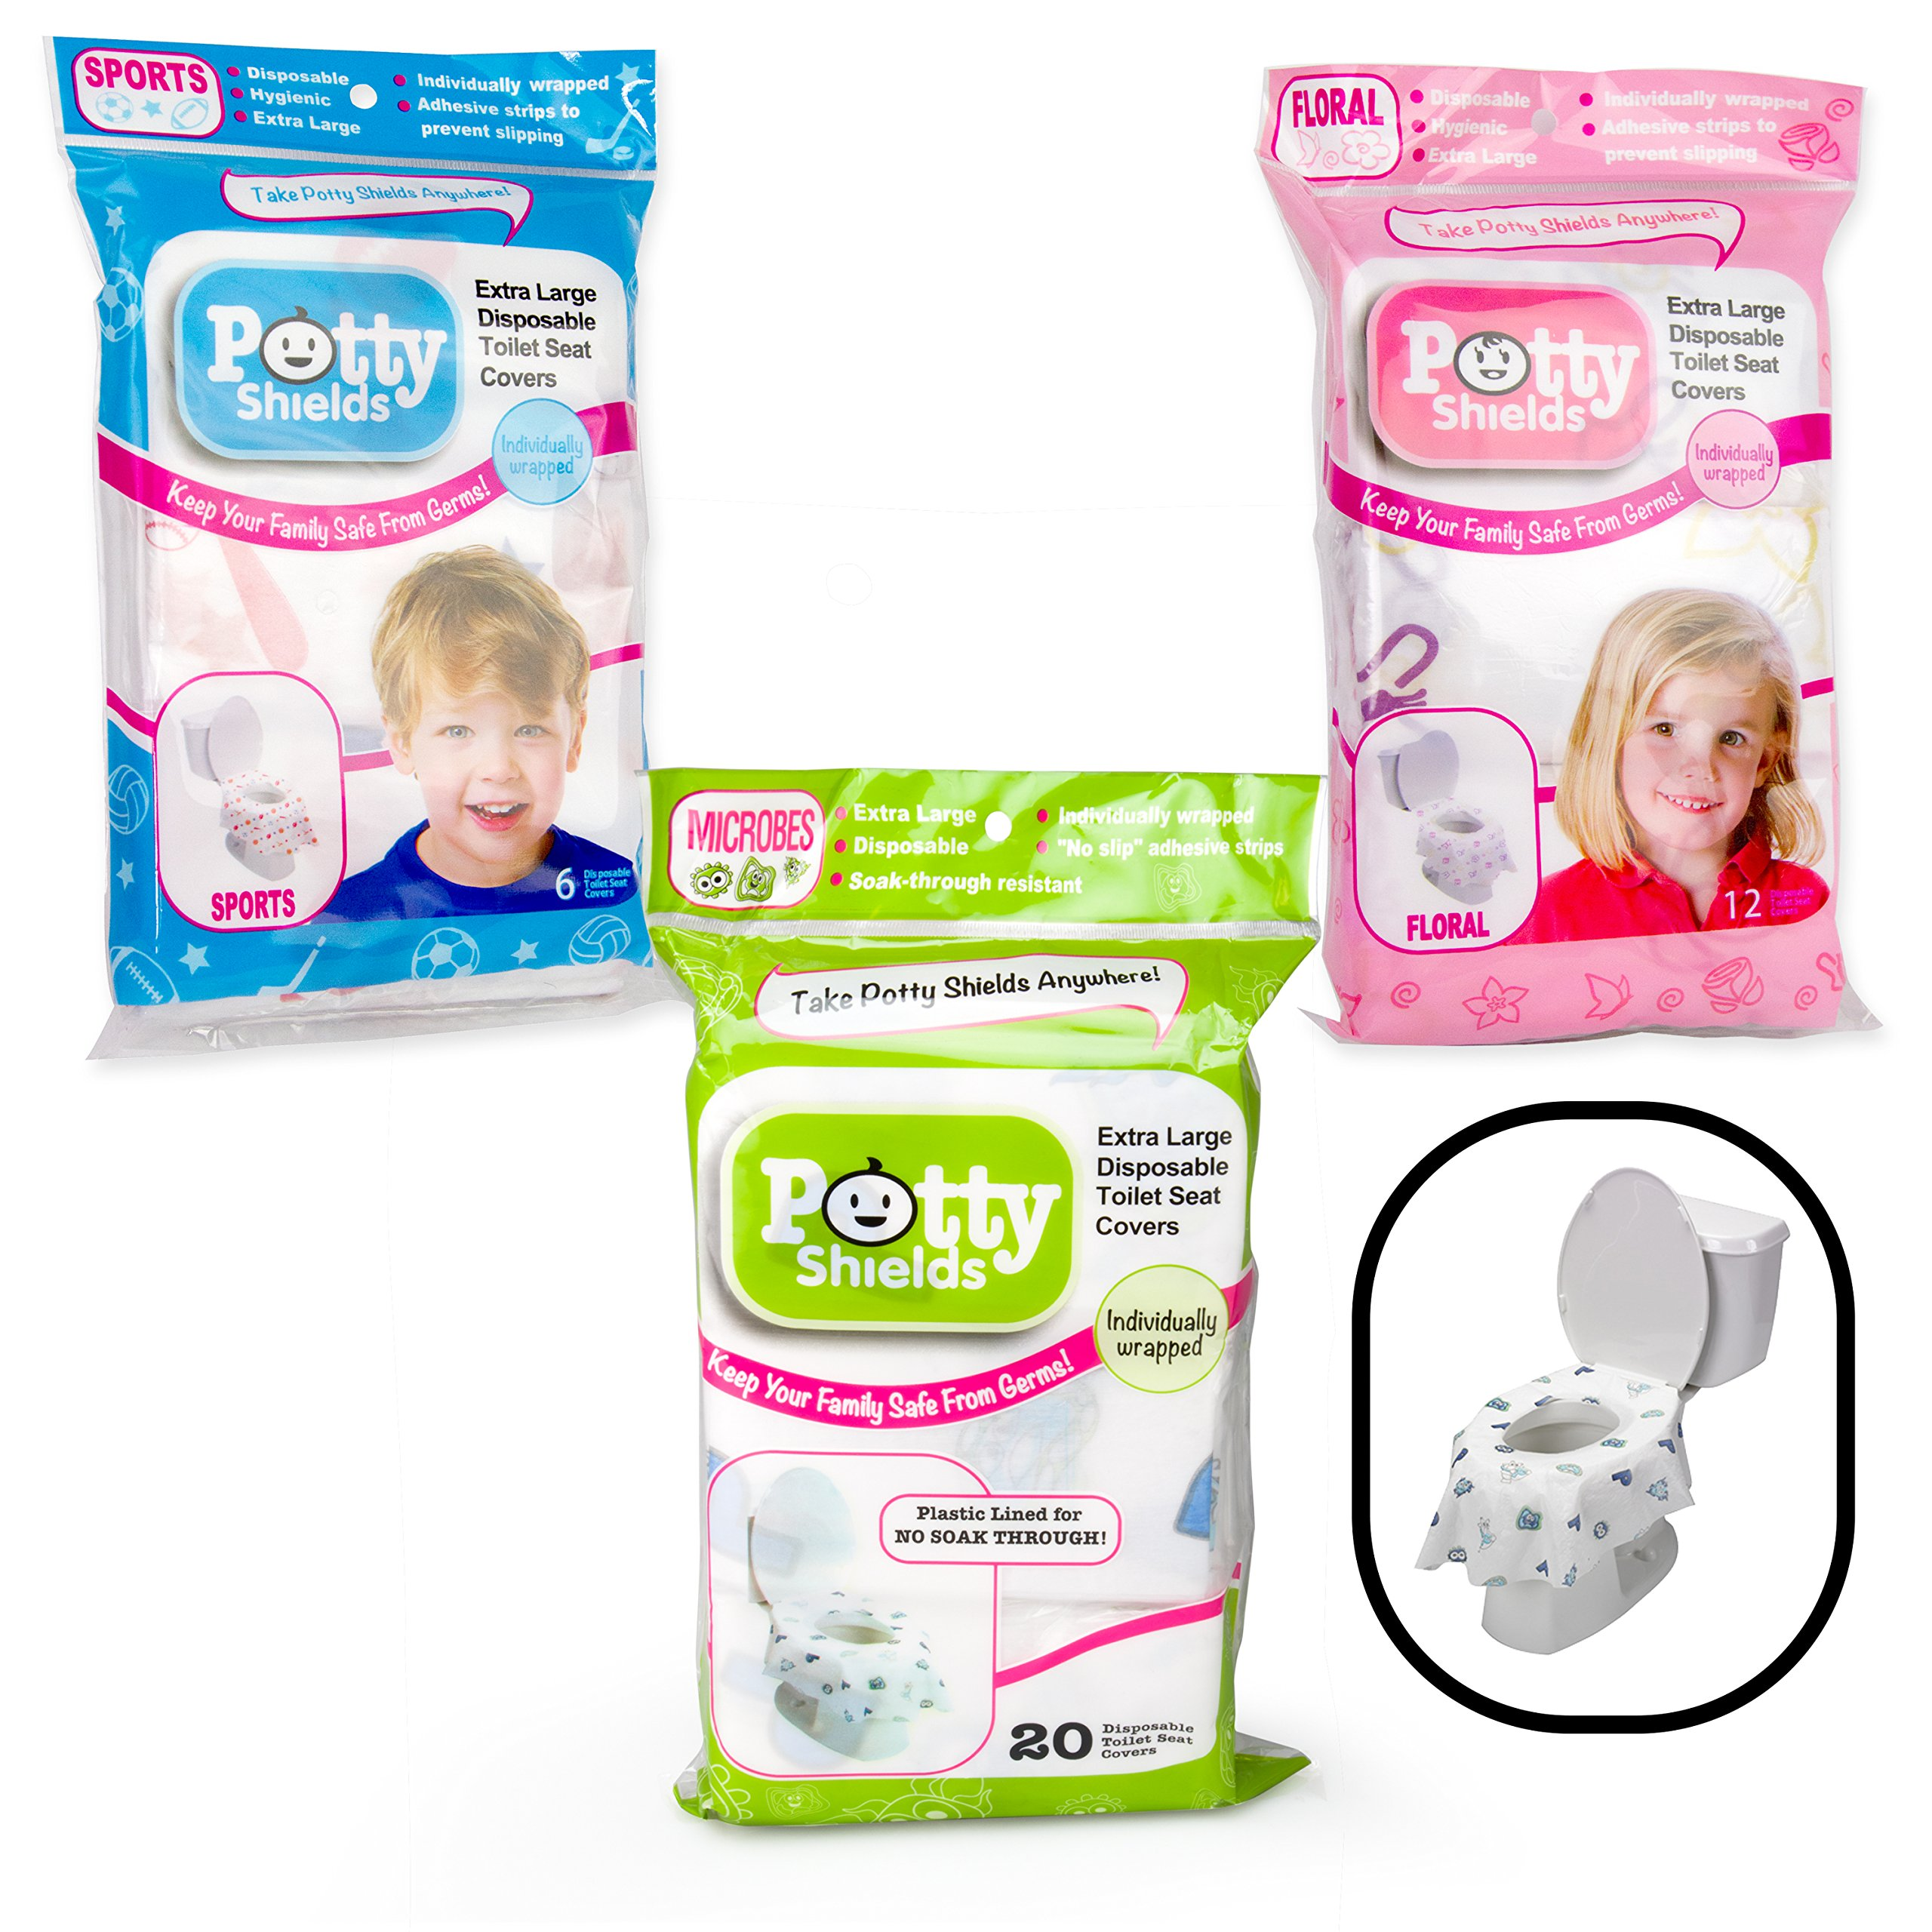 Toilet Seat Covers- Disposable XL Potty Seat Covers, Individually Wrapped by Potty Shields - Extra-Large, No Slip (Floral- 20 Pack)